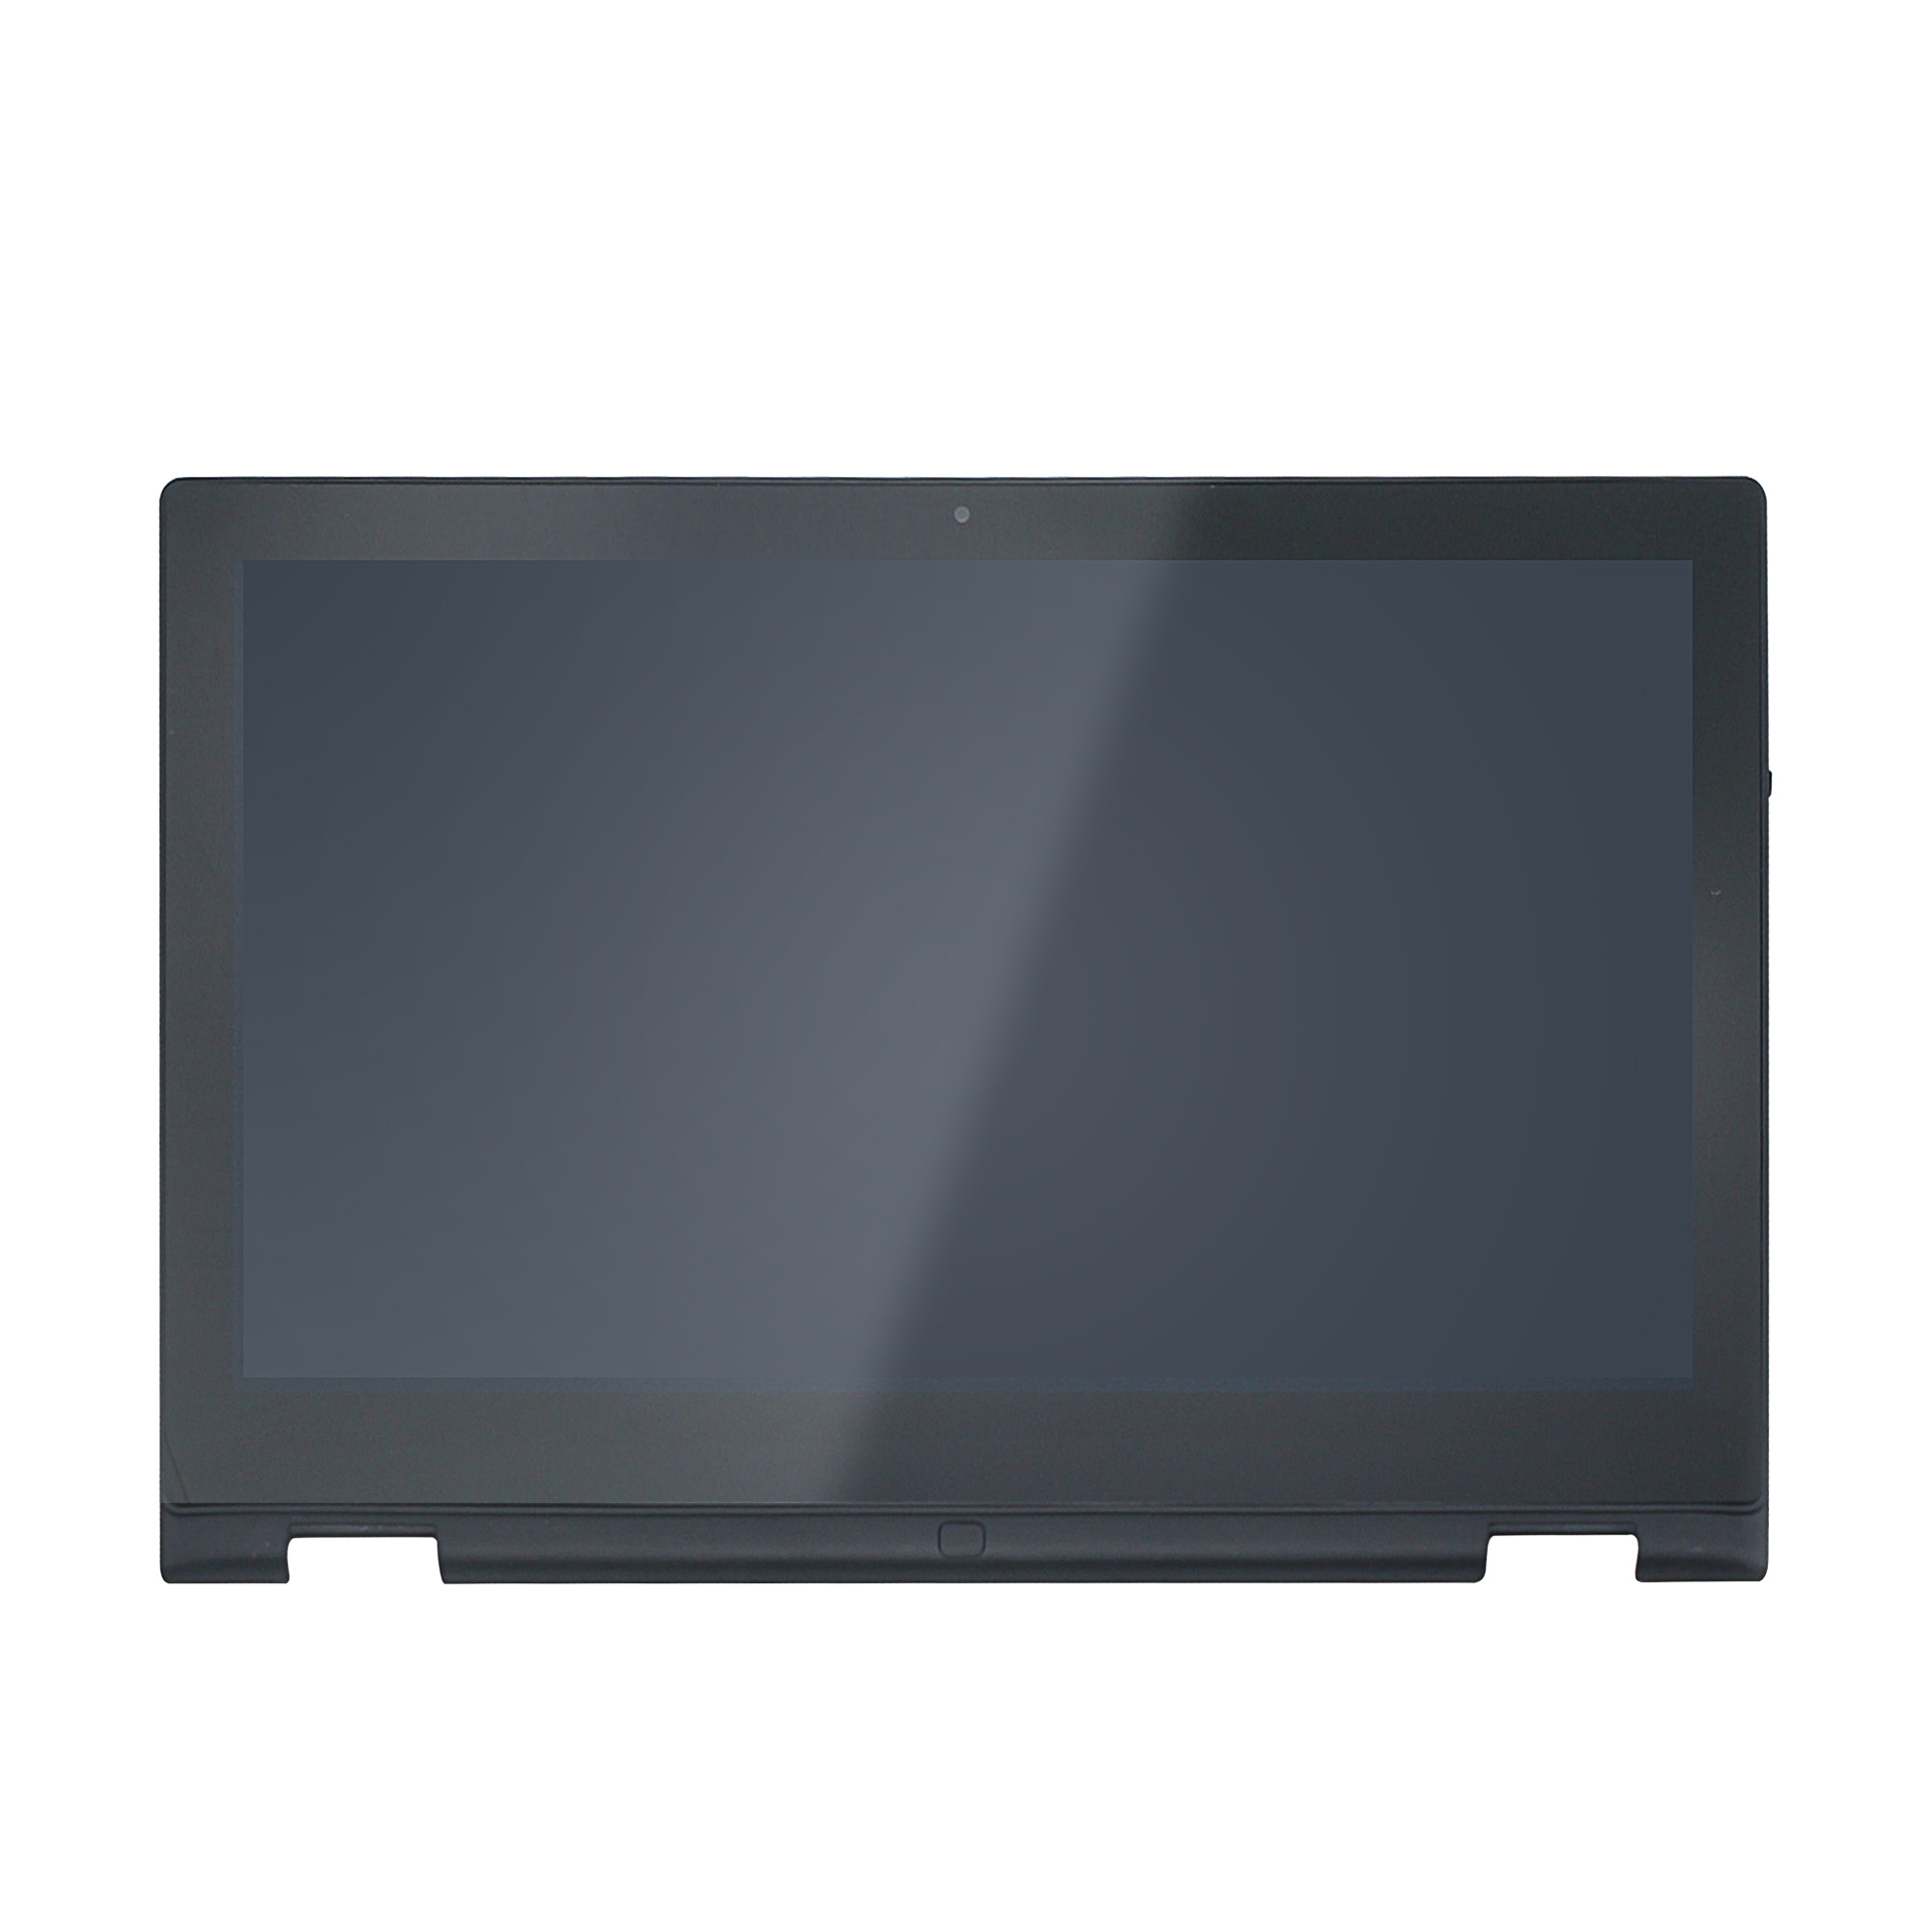 Dell Inspiron 3542 LCD Screen LCD Screen Complete Assembly Grade B